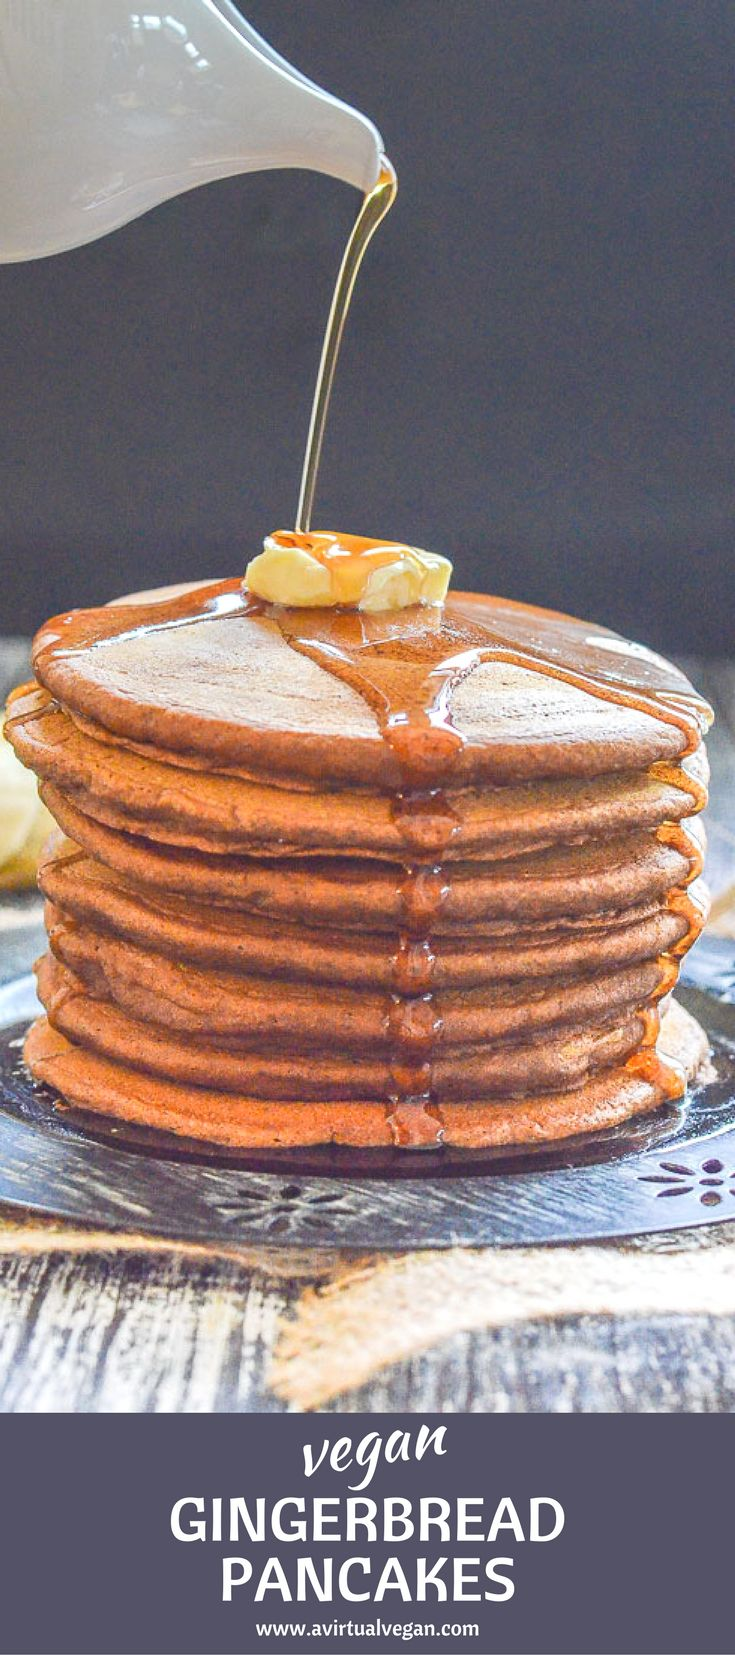 Soft, moist & fluffy Vegan Gingerbread Pancakes. Made healthier with wholegrain flour & not too sweet. Because…you know? TOPPINGS!! (copious amounts of maple syrup are recommended! ) #vegan #pancakes #veganpancakes #gingerbread